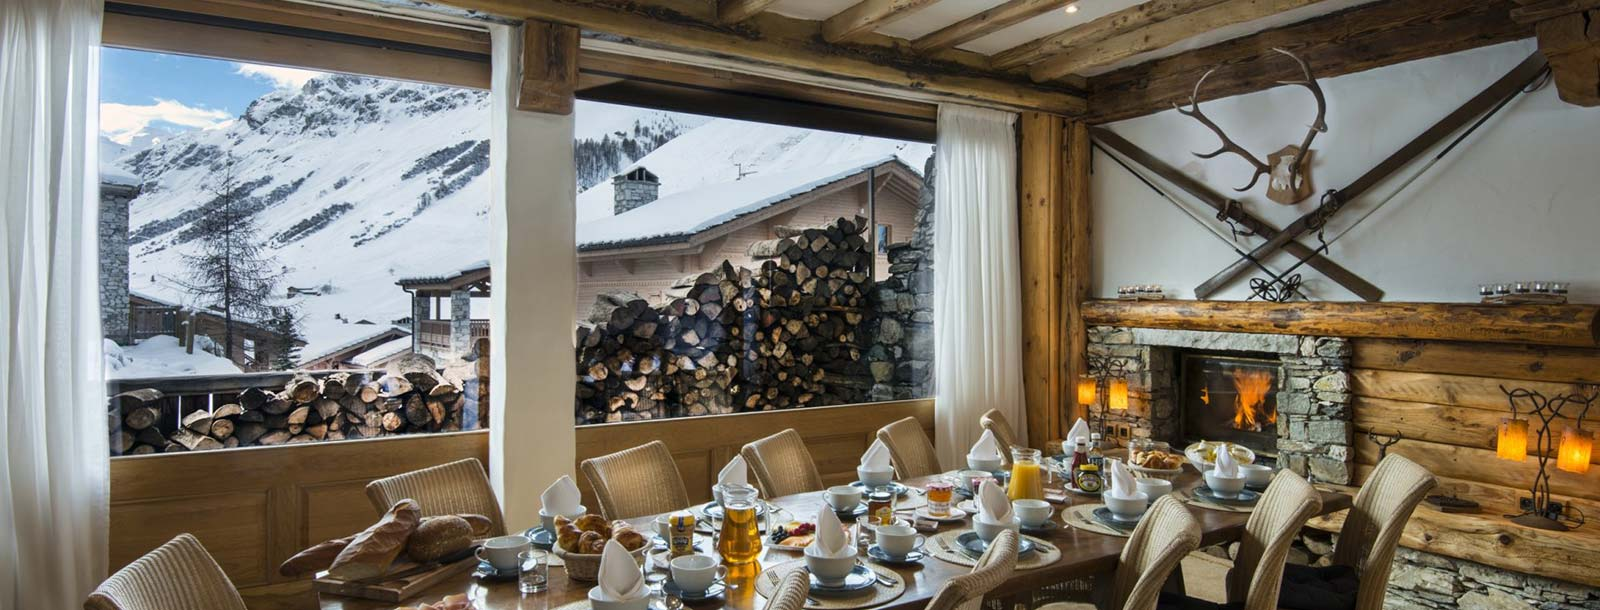 luxury resort guide val d isere by skiboutique